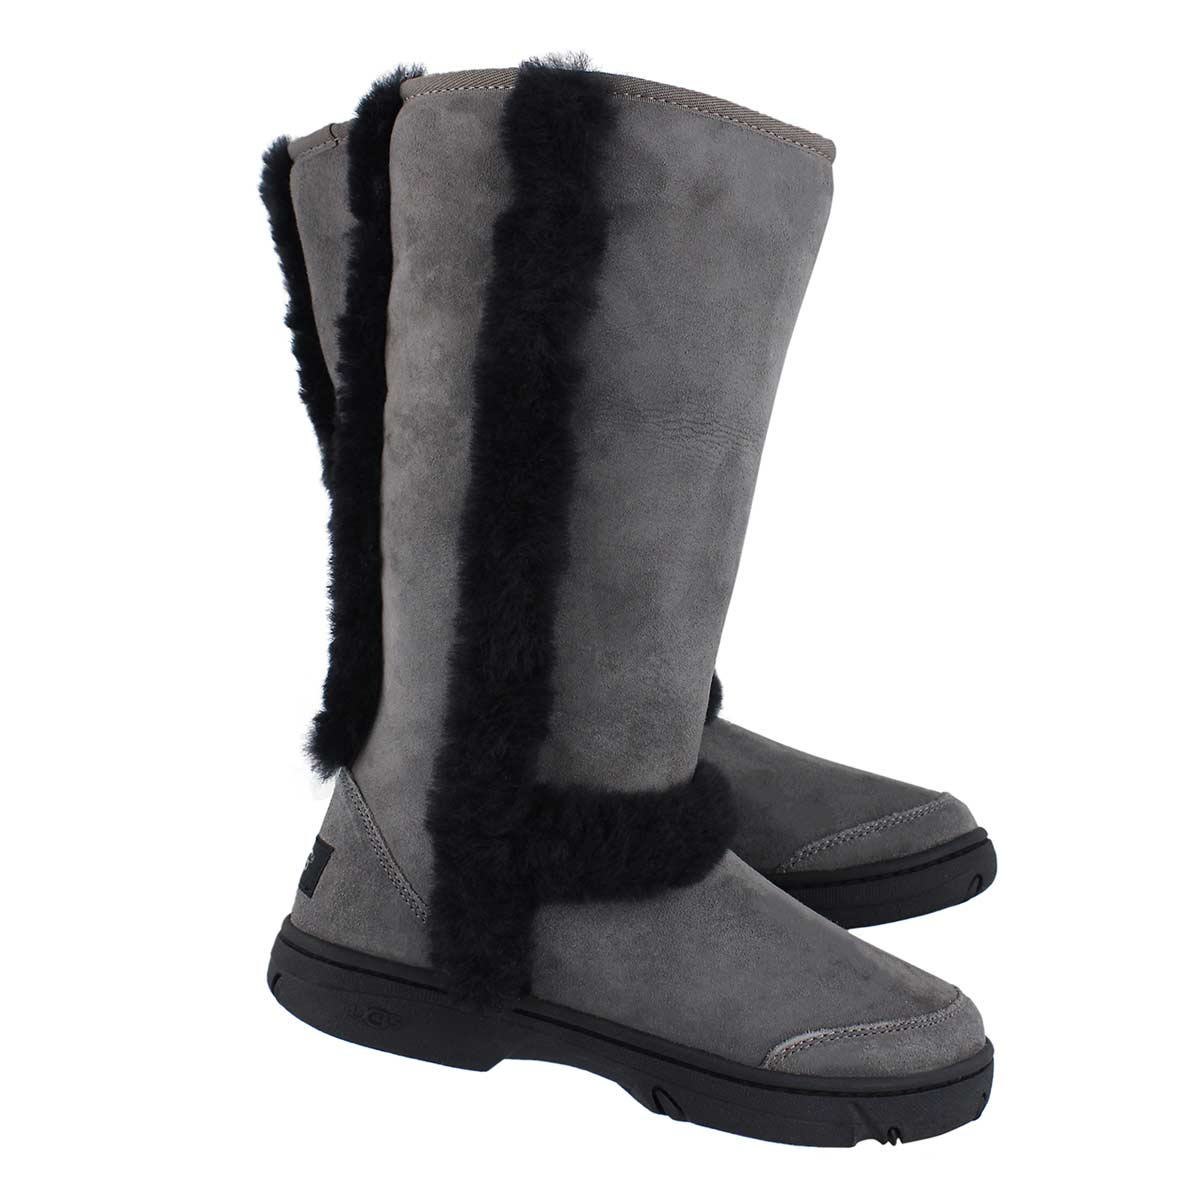 Lds Sunburst gry/blk tall sheepskin boot